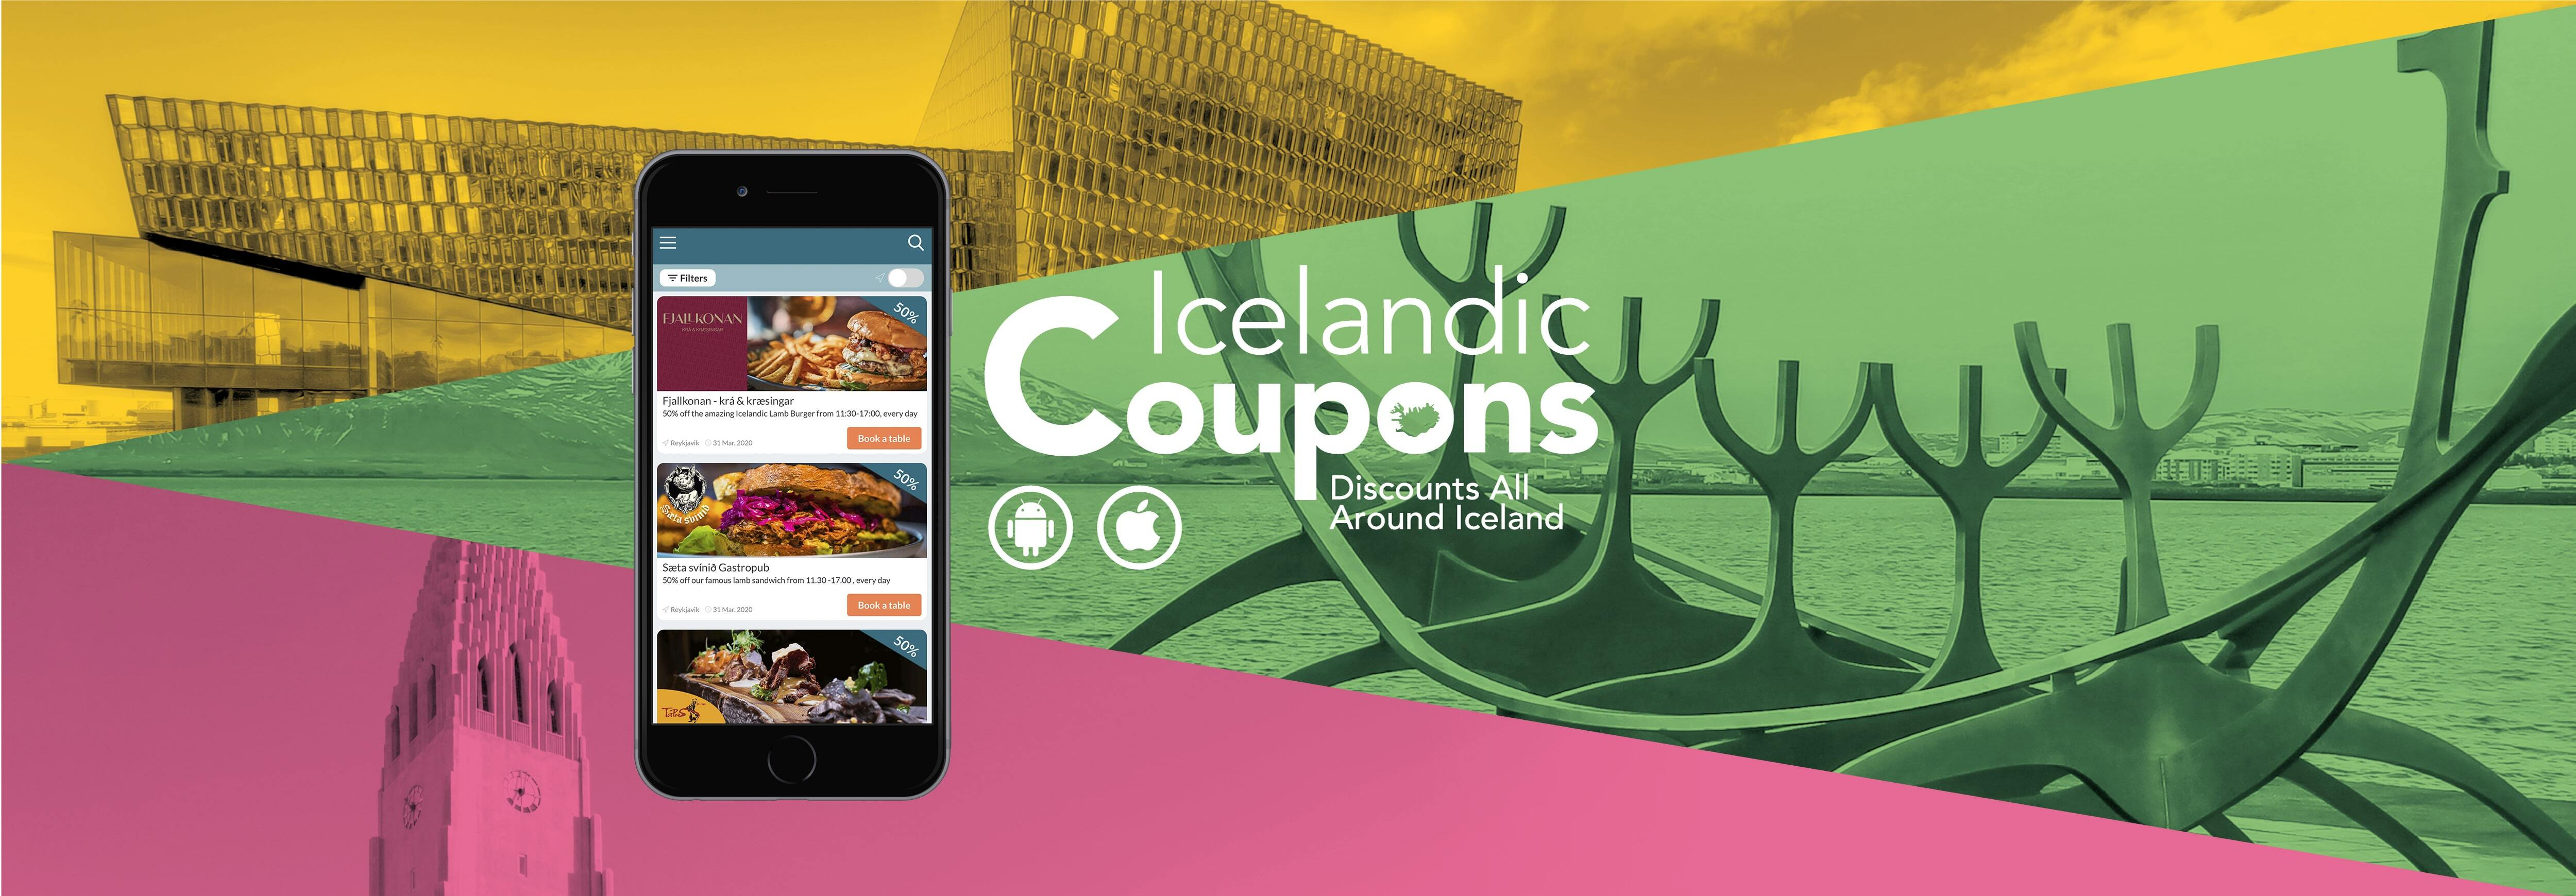 best deals in iceland